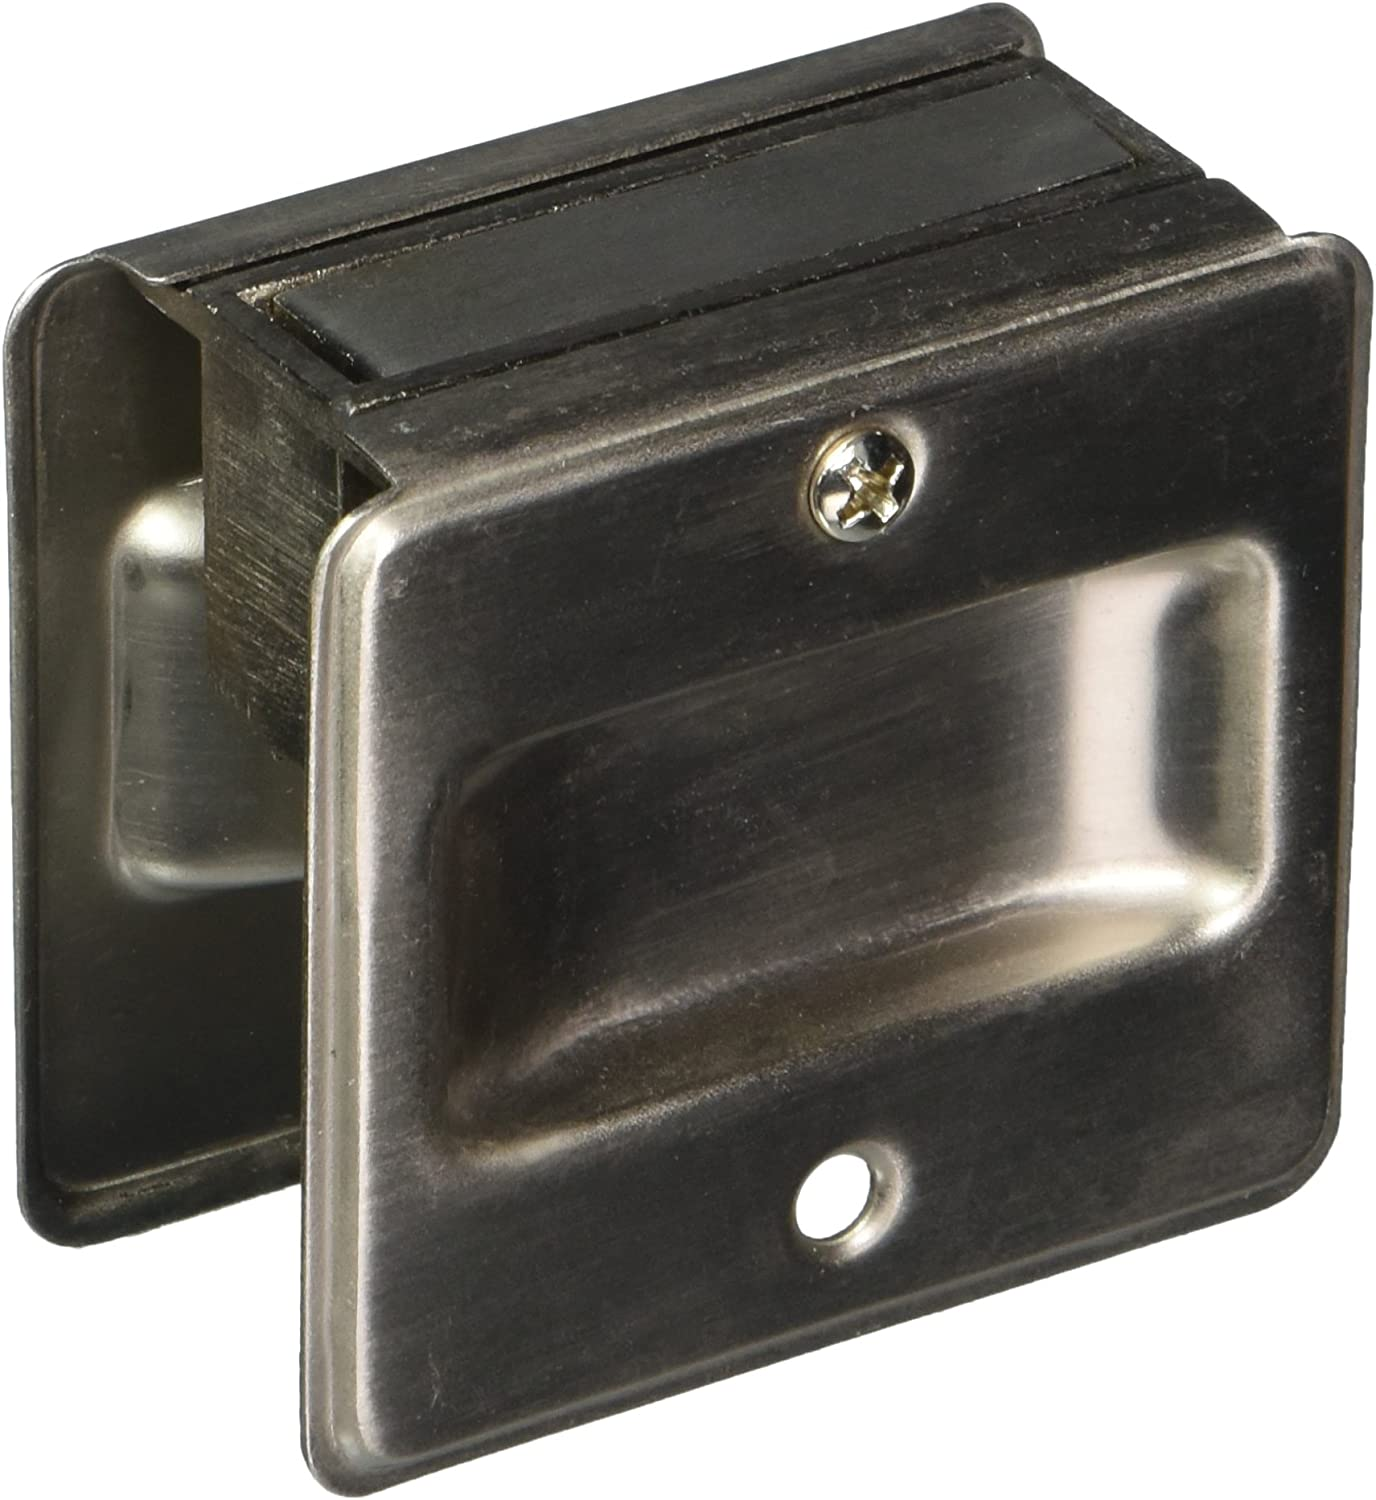 Ives by Schlage 990B-613 Sliding Door Pull Schlage Lock Company